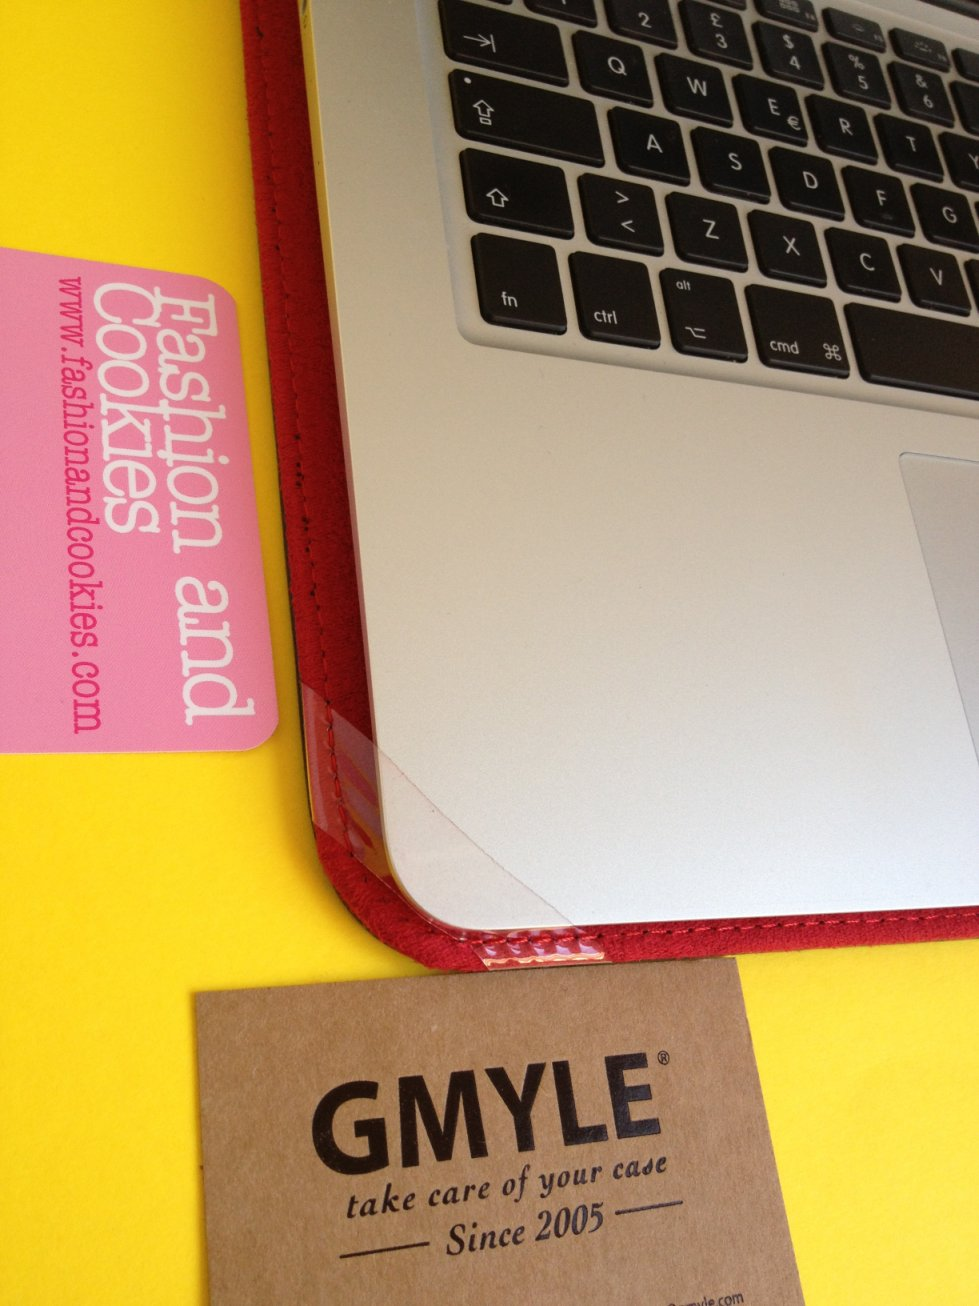 Gmyle leather folio 13 MacBook Air case review on Fashion and Cookies fashion blog